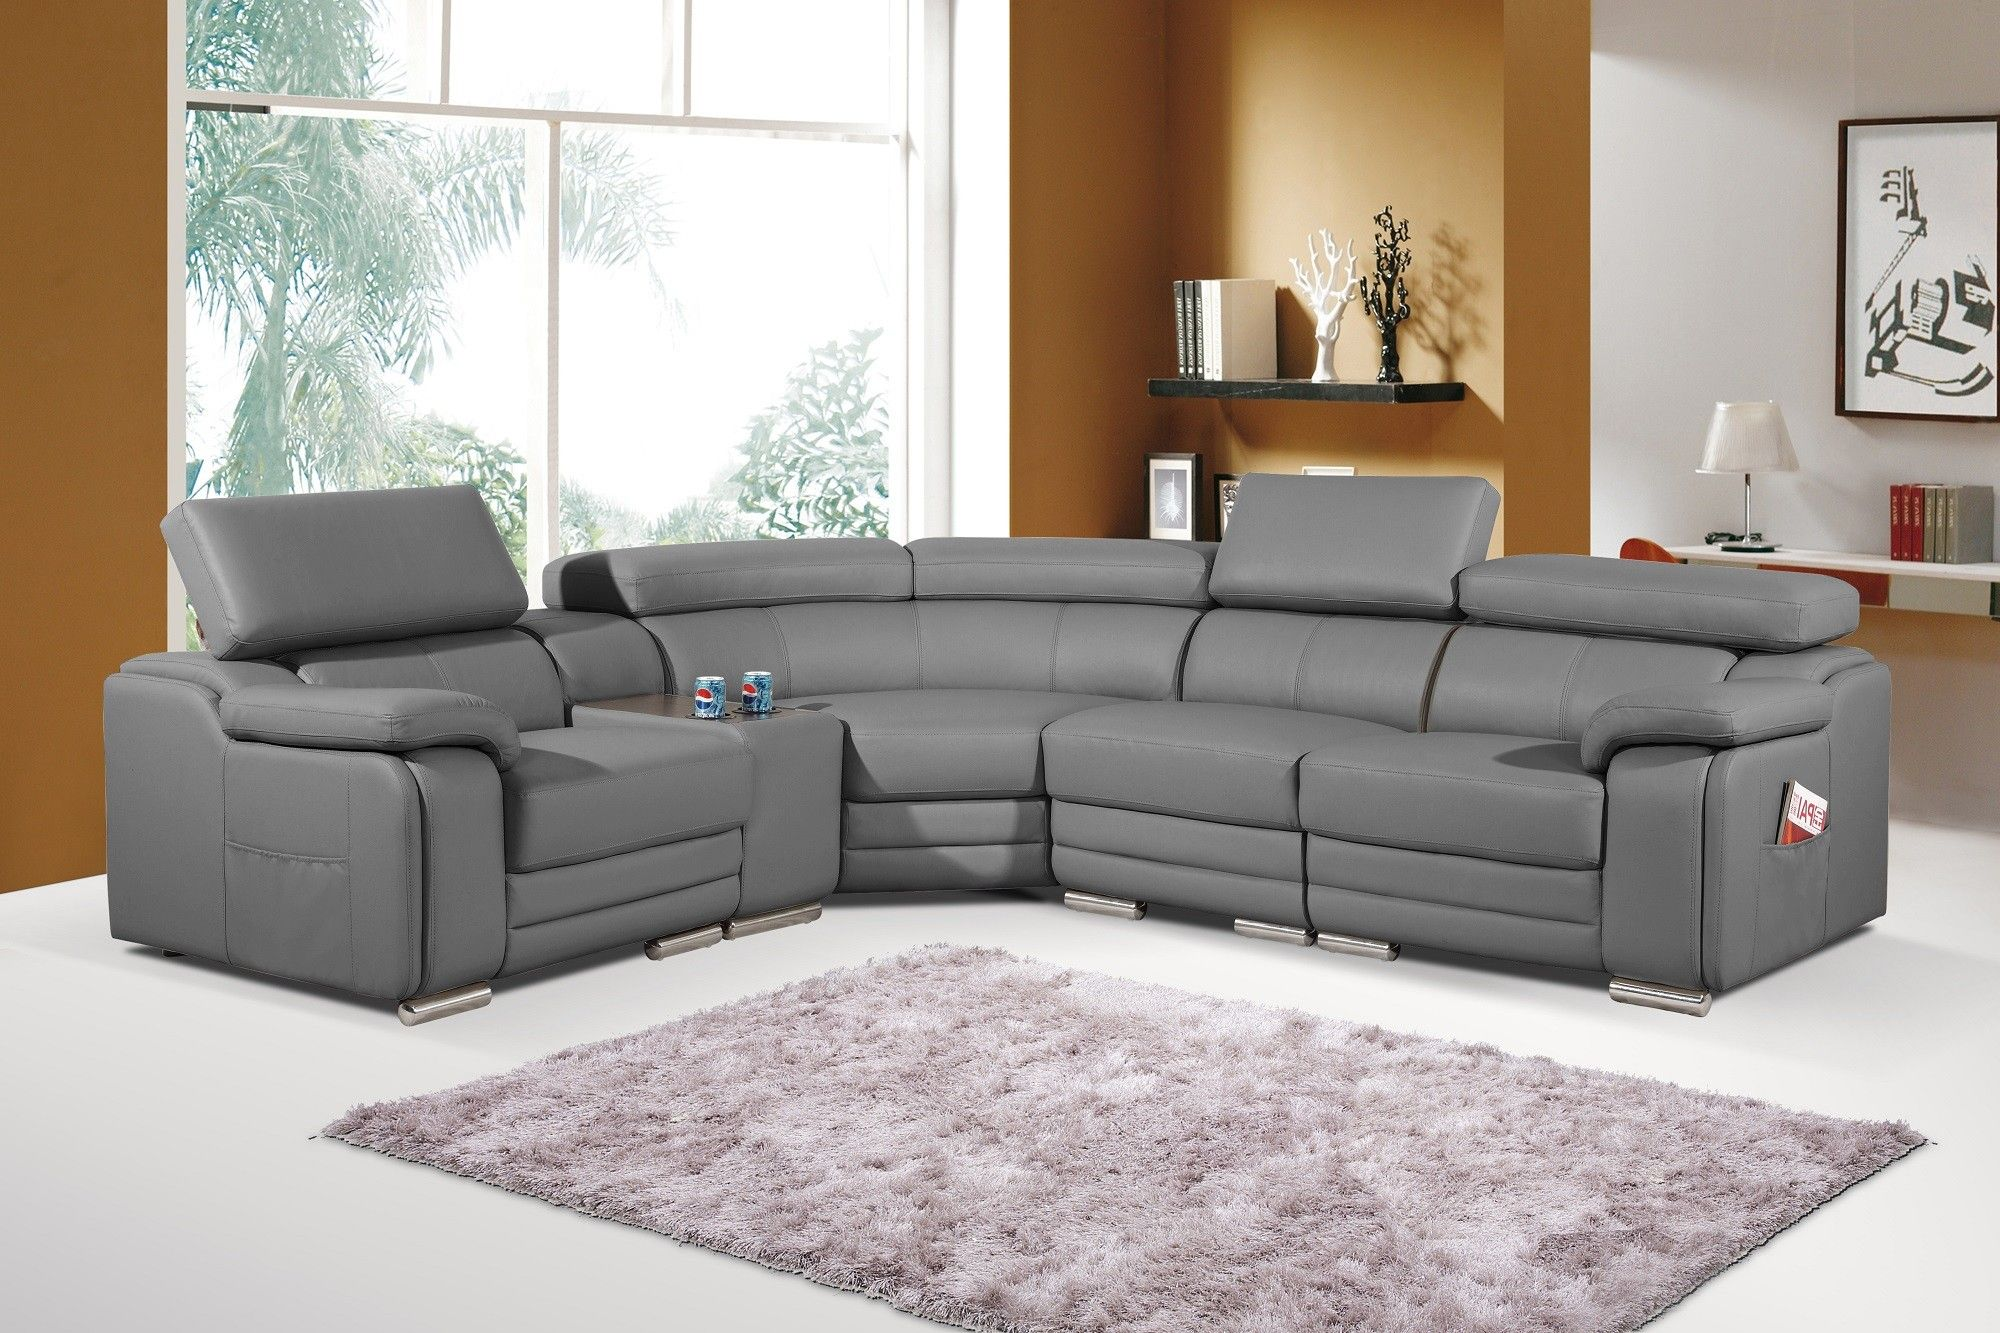 pleasing on couch grey by curved fur arms sectional showing added leather white design round nice back look rug of with table glass and